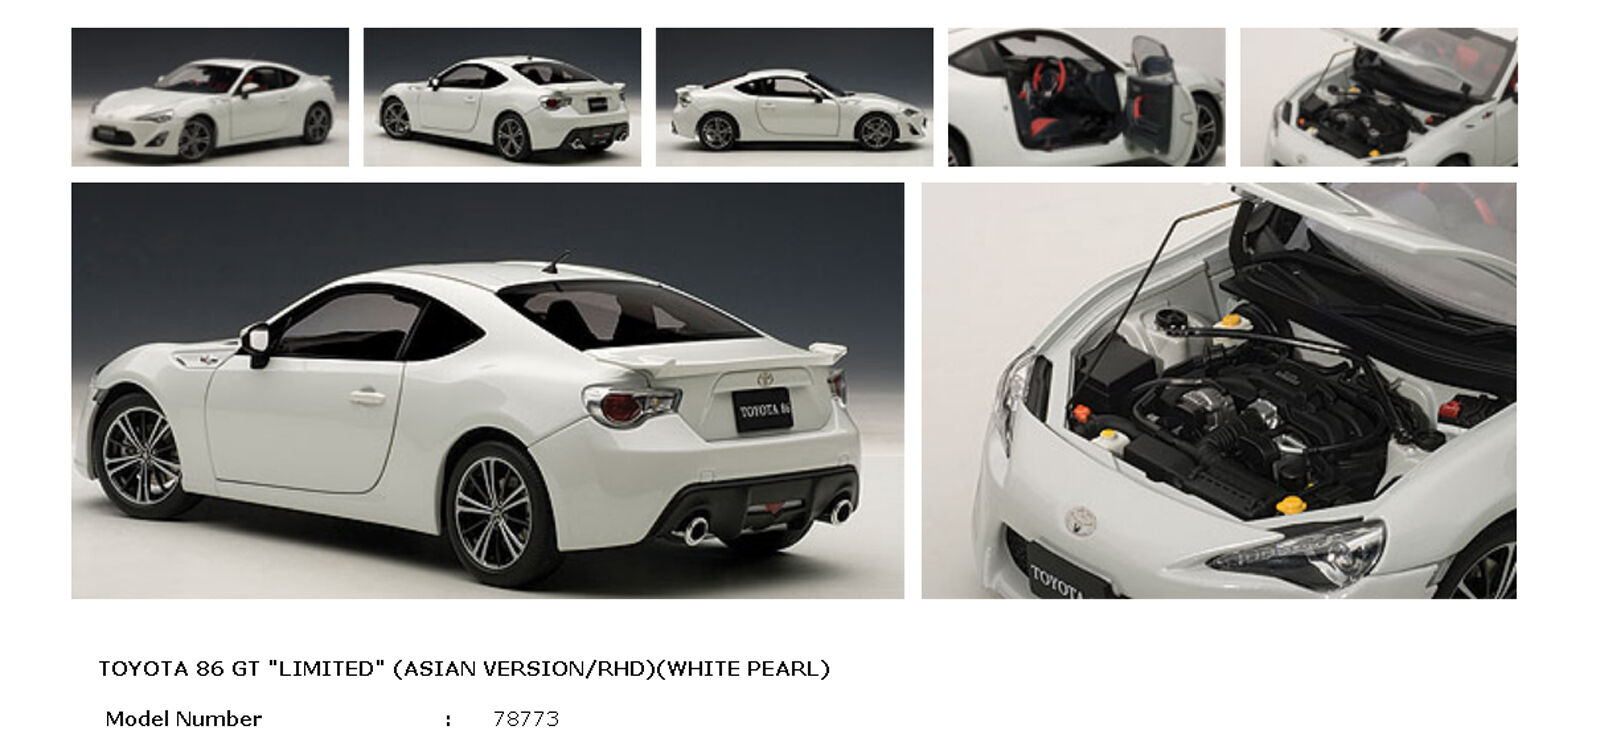 AUTOART 1 18 TOYOTA FRS 86 GT LIMITED ASIAN VERSION RHD WHITE PEARL 78773